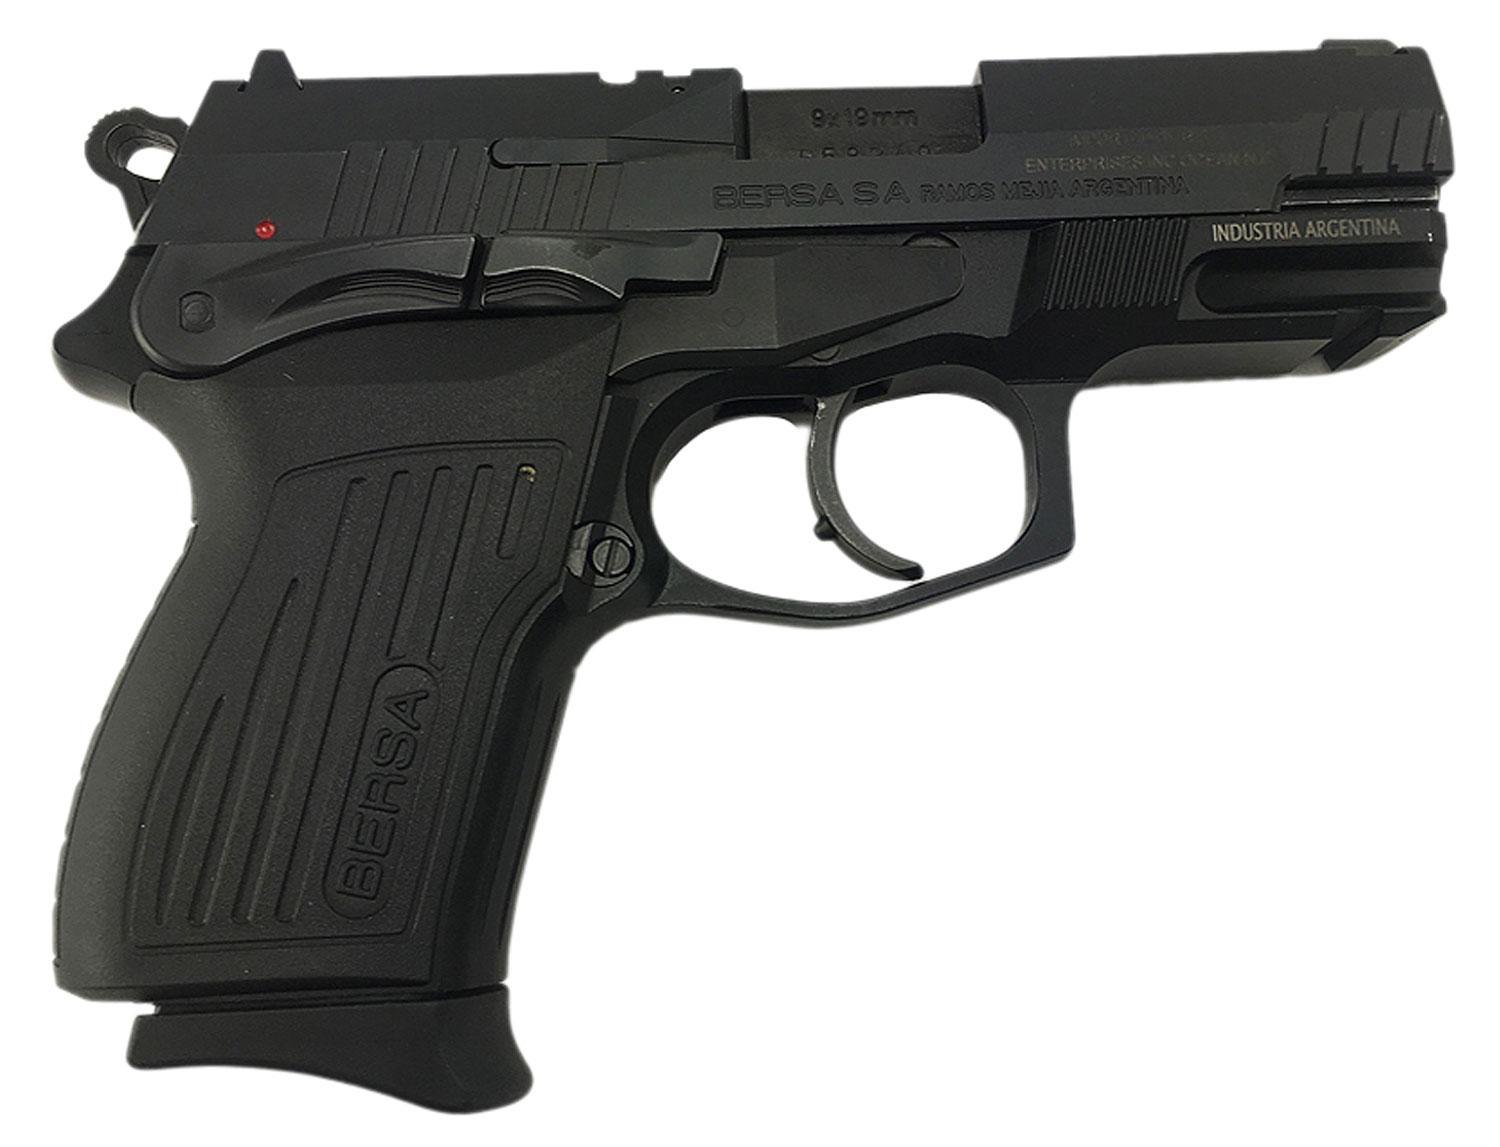 Bersa Tpr40cm Thunder Pro Compact Single/Double 40 Smith & Wesson (S & W) 3.25